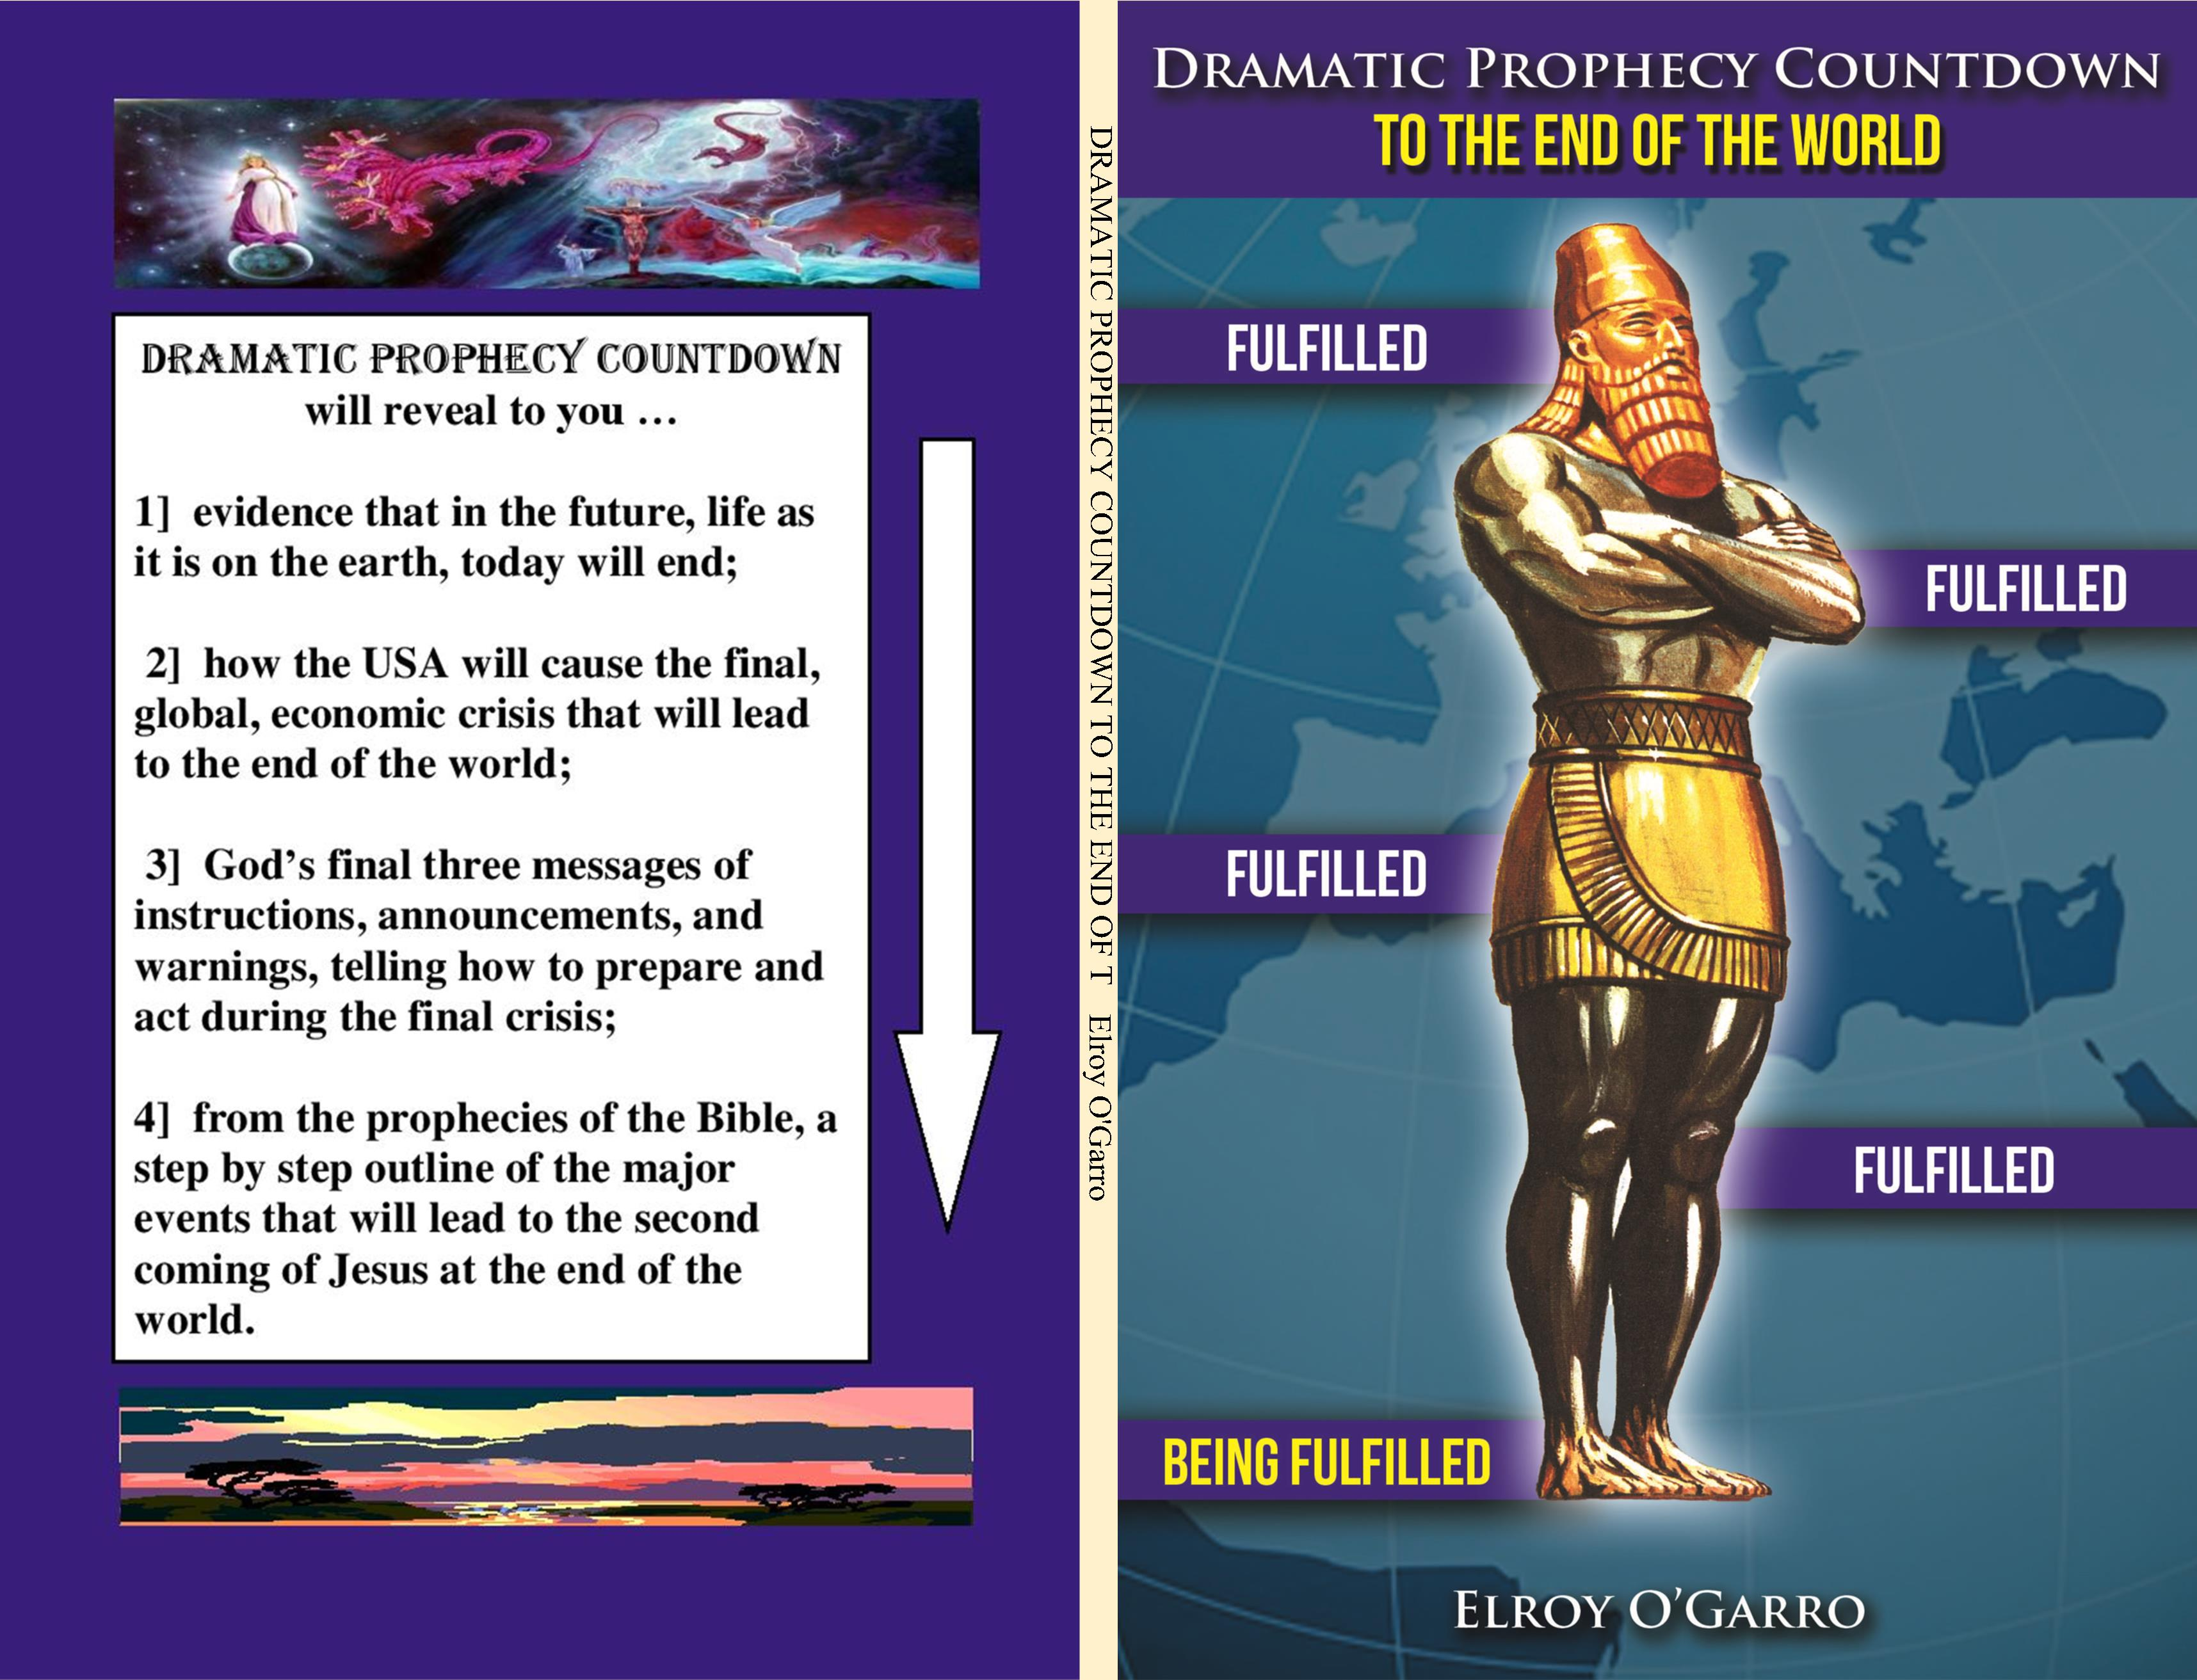 DRAMATIC PROPHECY COUNTDOWN TO THE END OF THE WORLD cover image